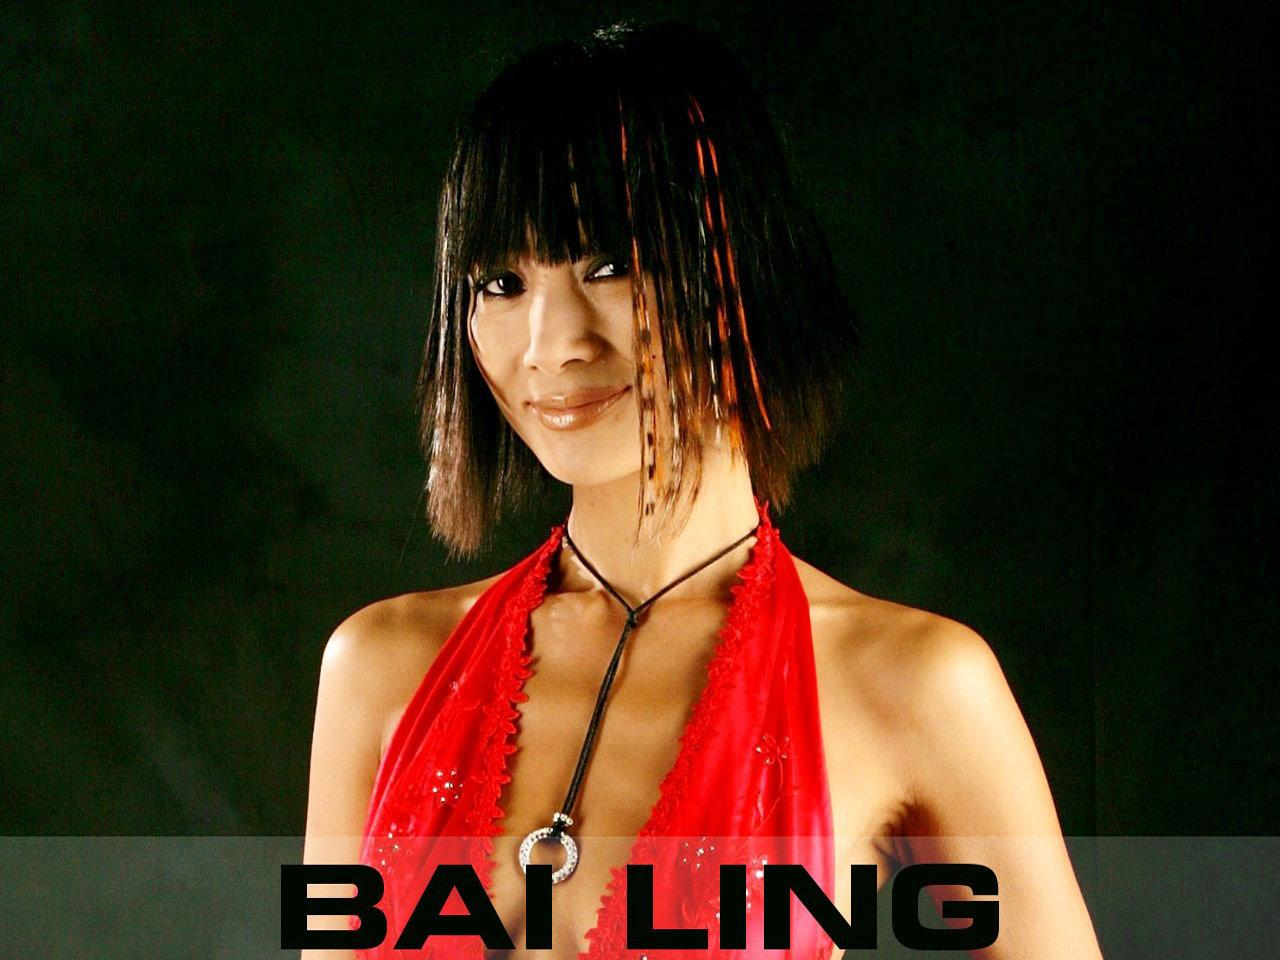 Bai Ling at 1280 x 960 size wallpapers HD quality